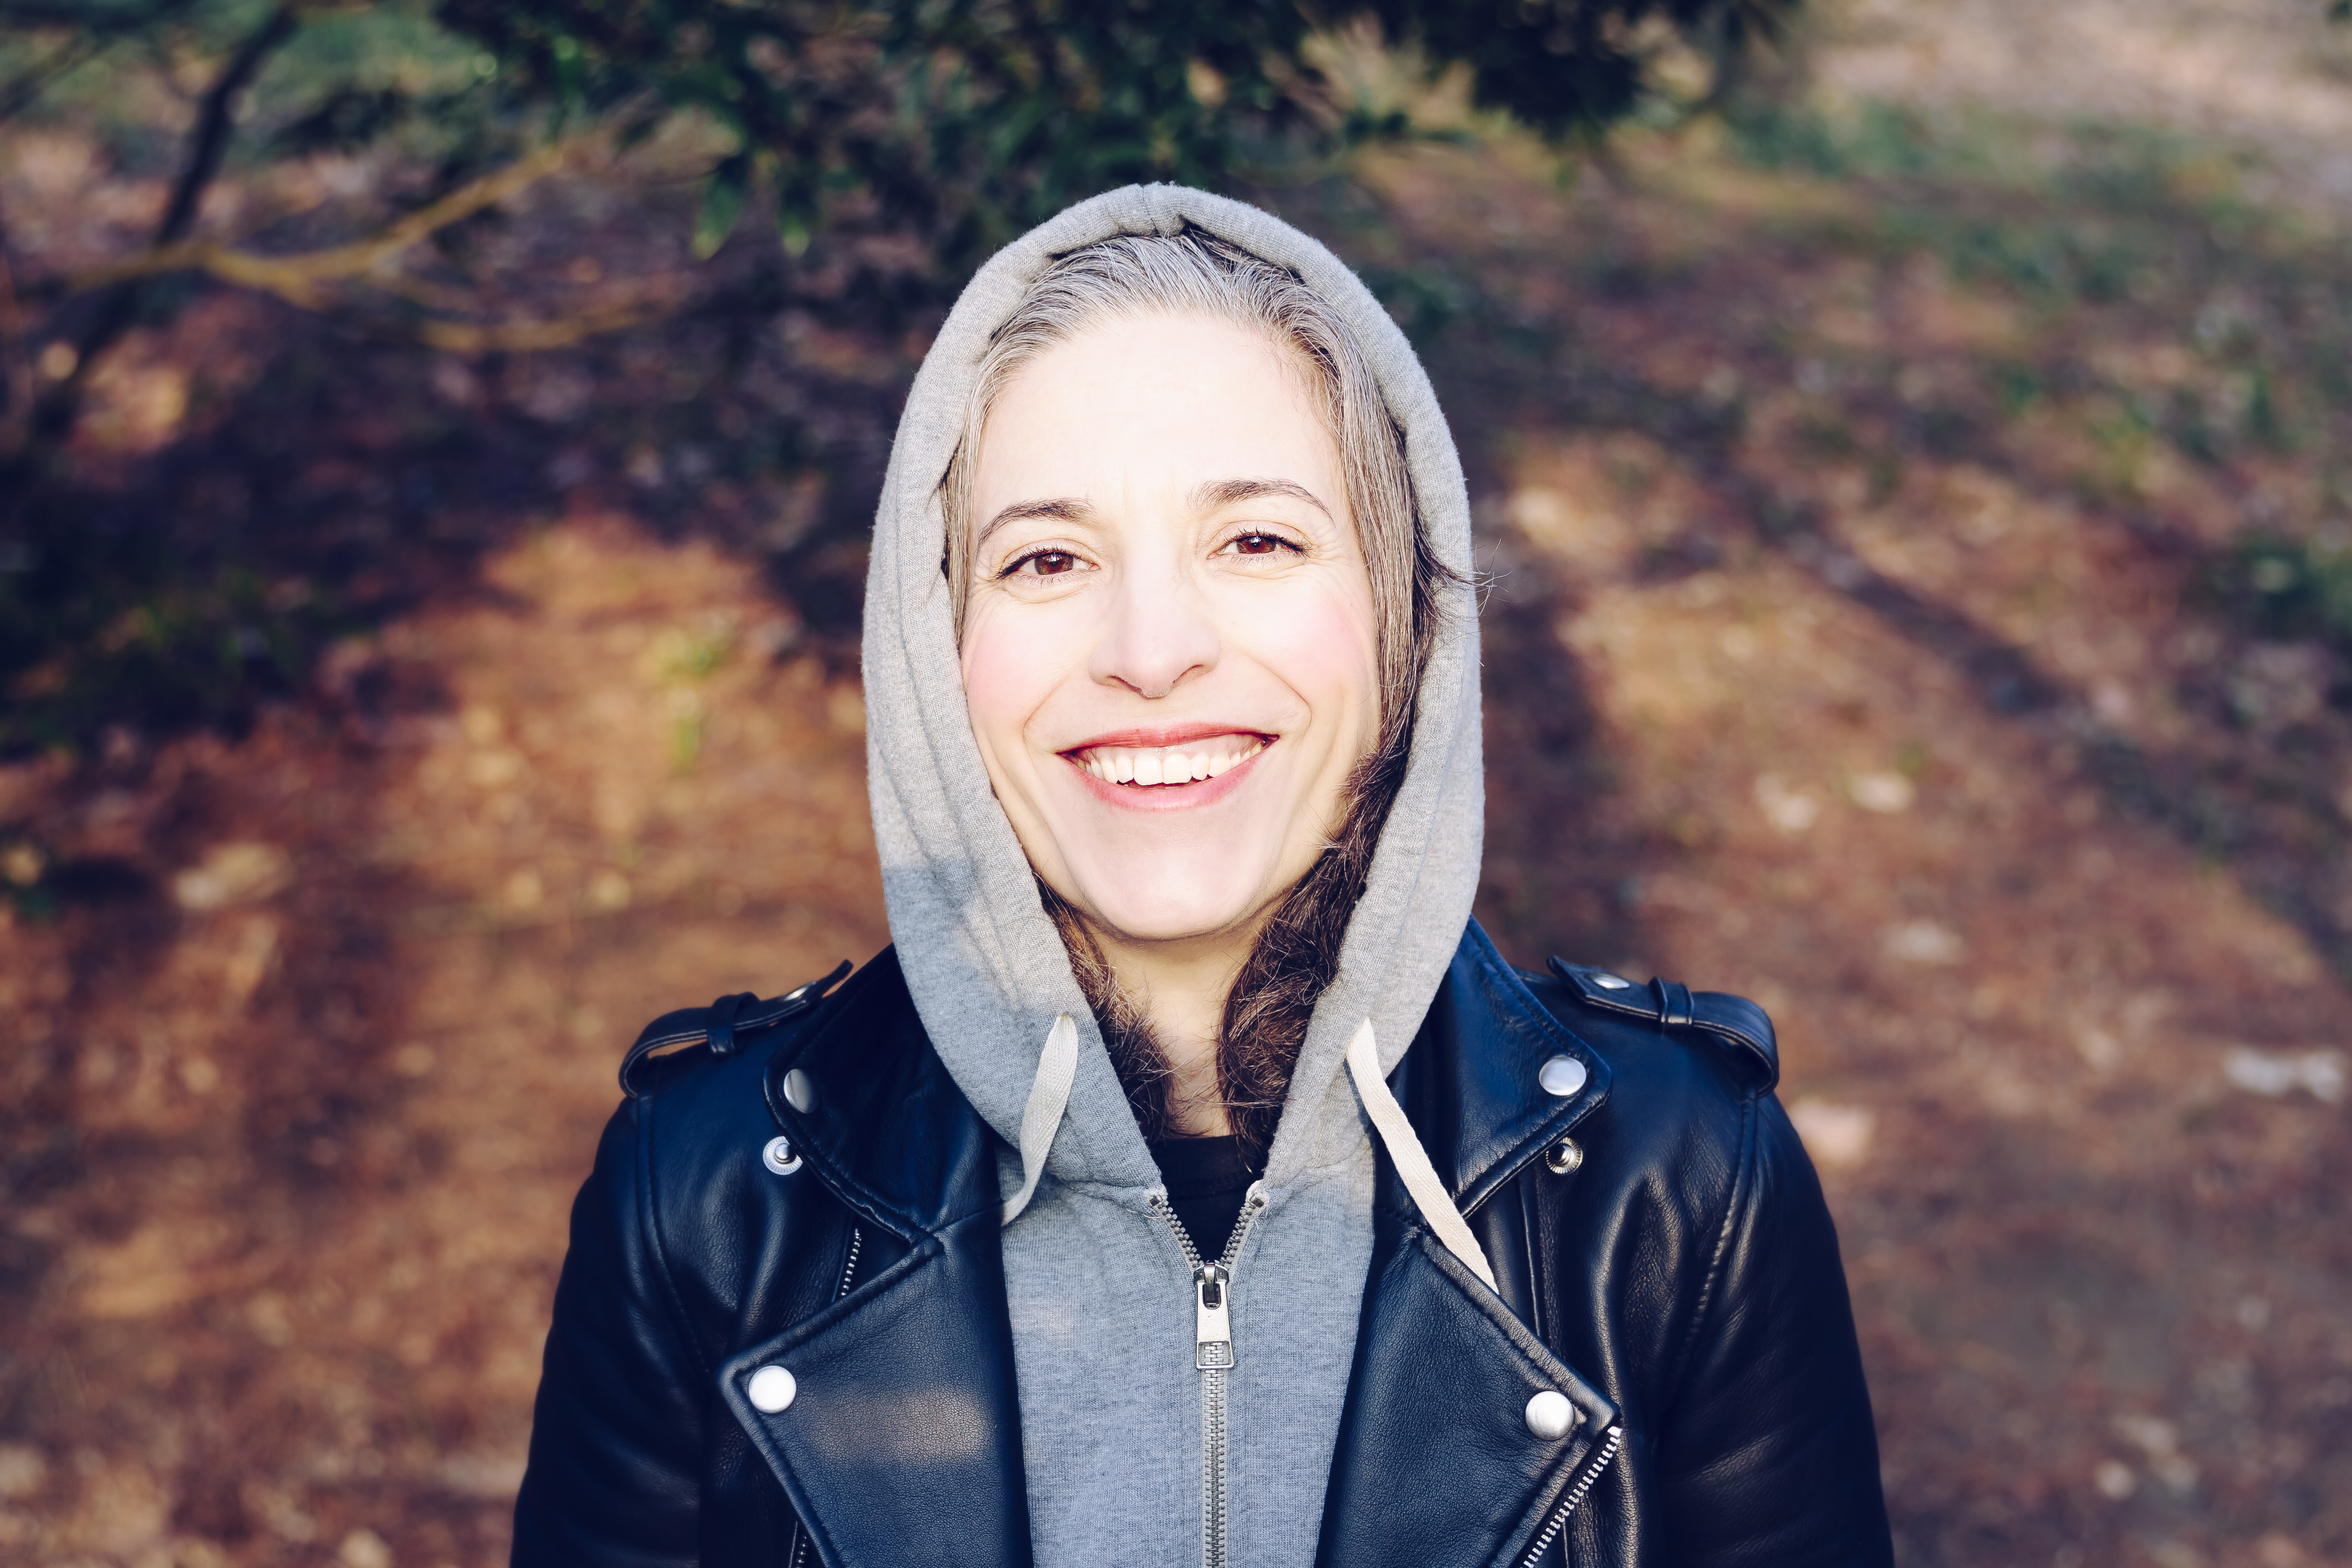 A smiling woman in a gray hooded sweatshirt and leather jacket outside in San Sebastián